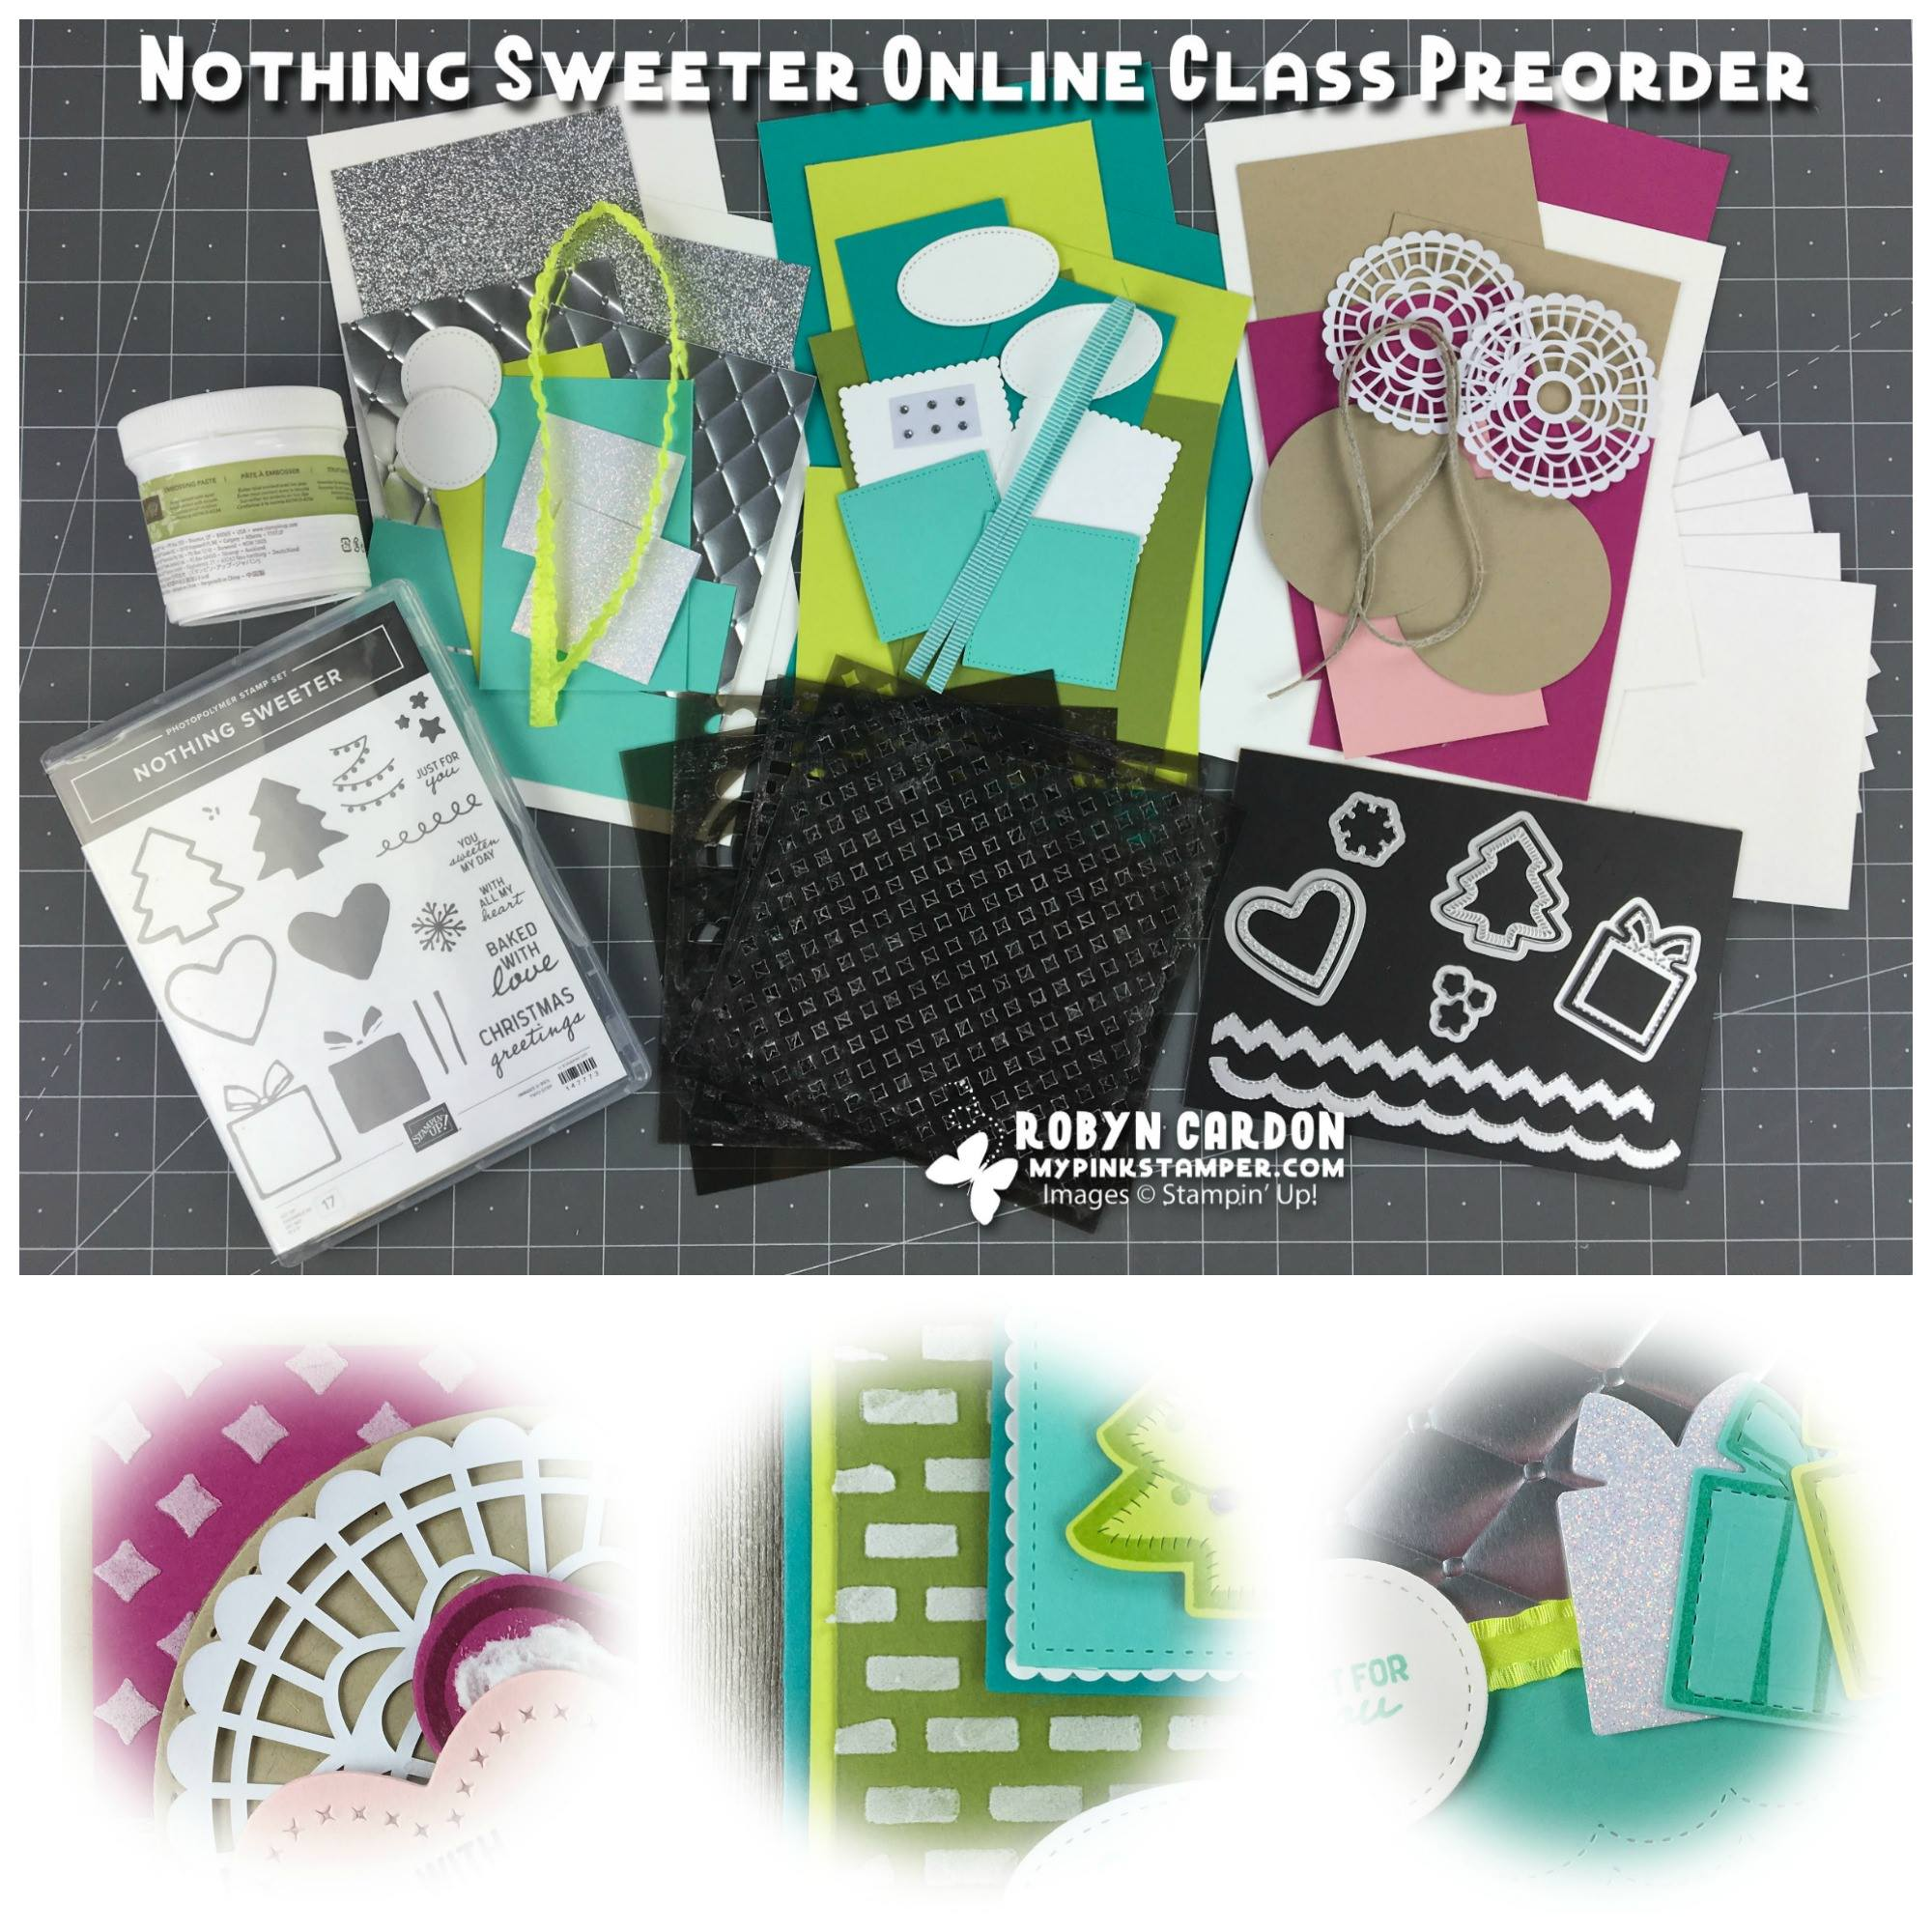 Nothing Sweeter Online Class Preorder